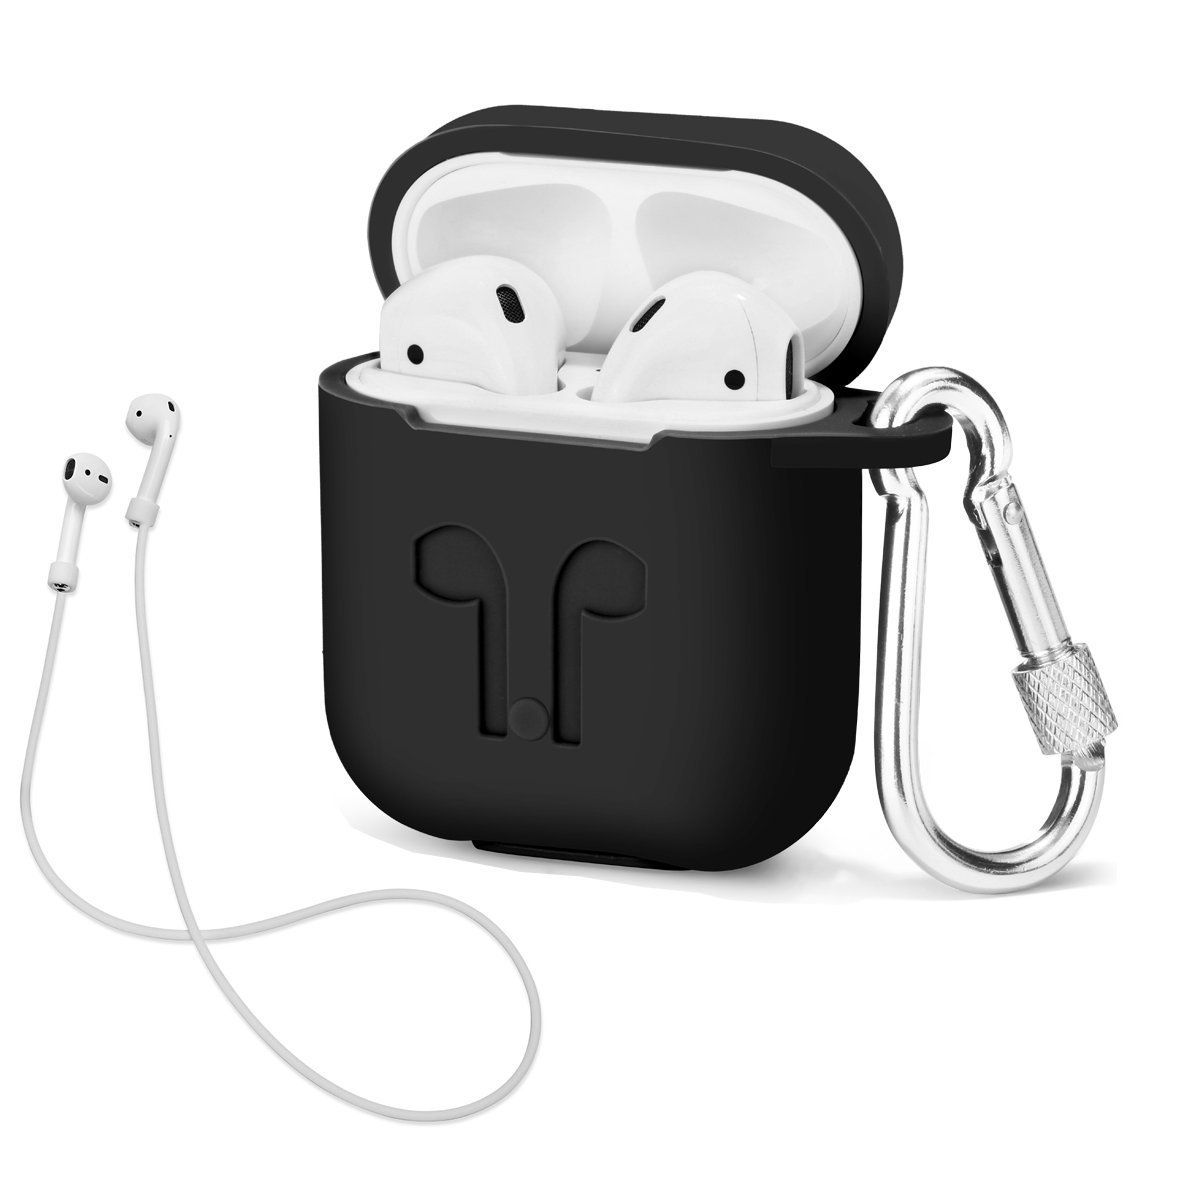 AirPods Case with Strap Protective Silicone Cover with Carabiner for Apple iPhone 7 8 x plus wireless earphone Airpods Accessories